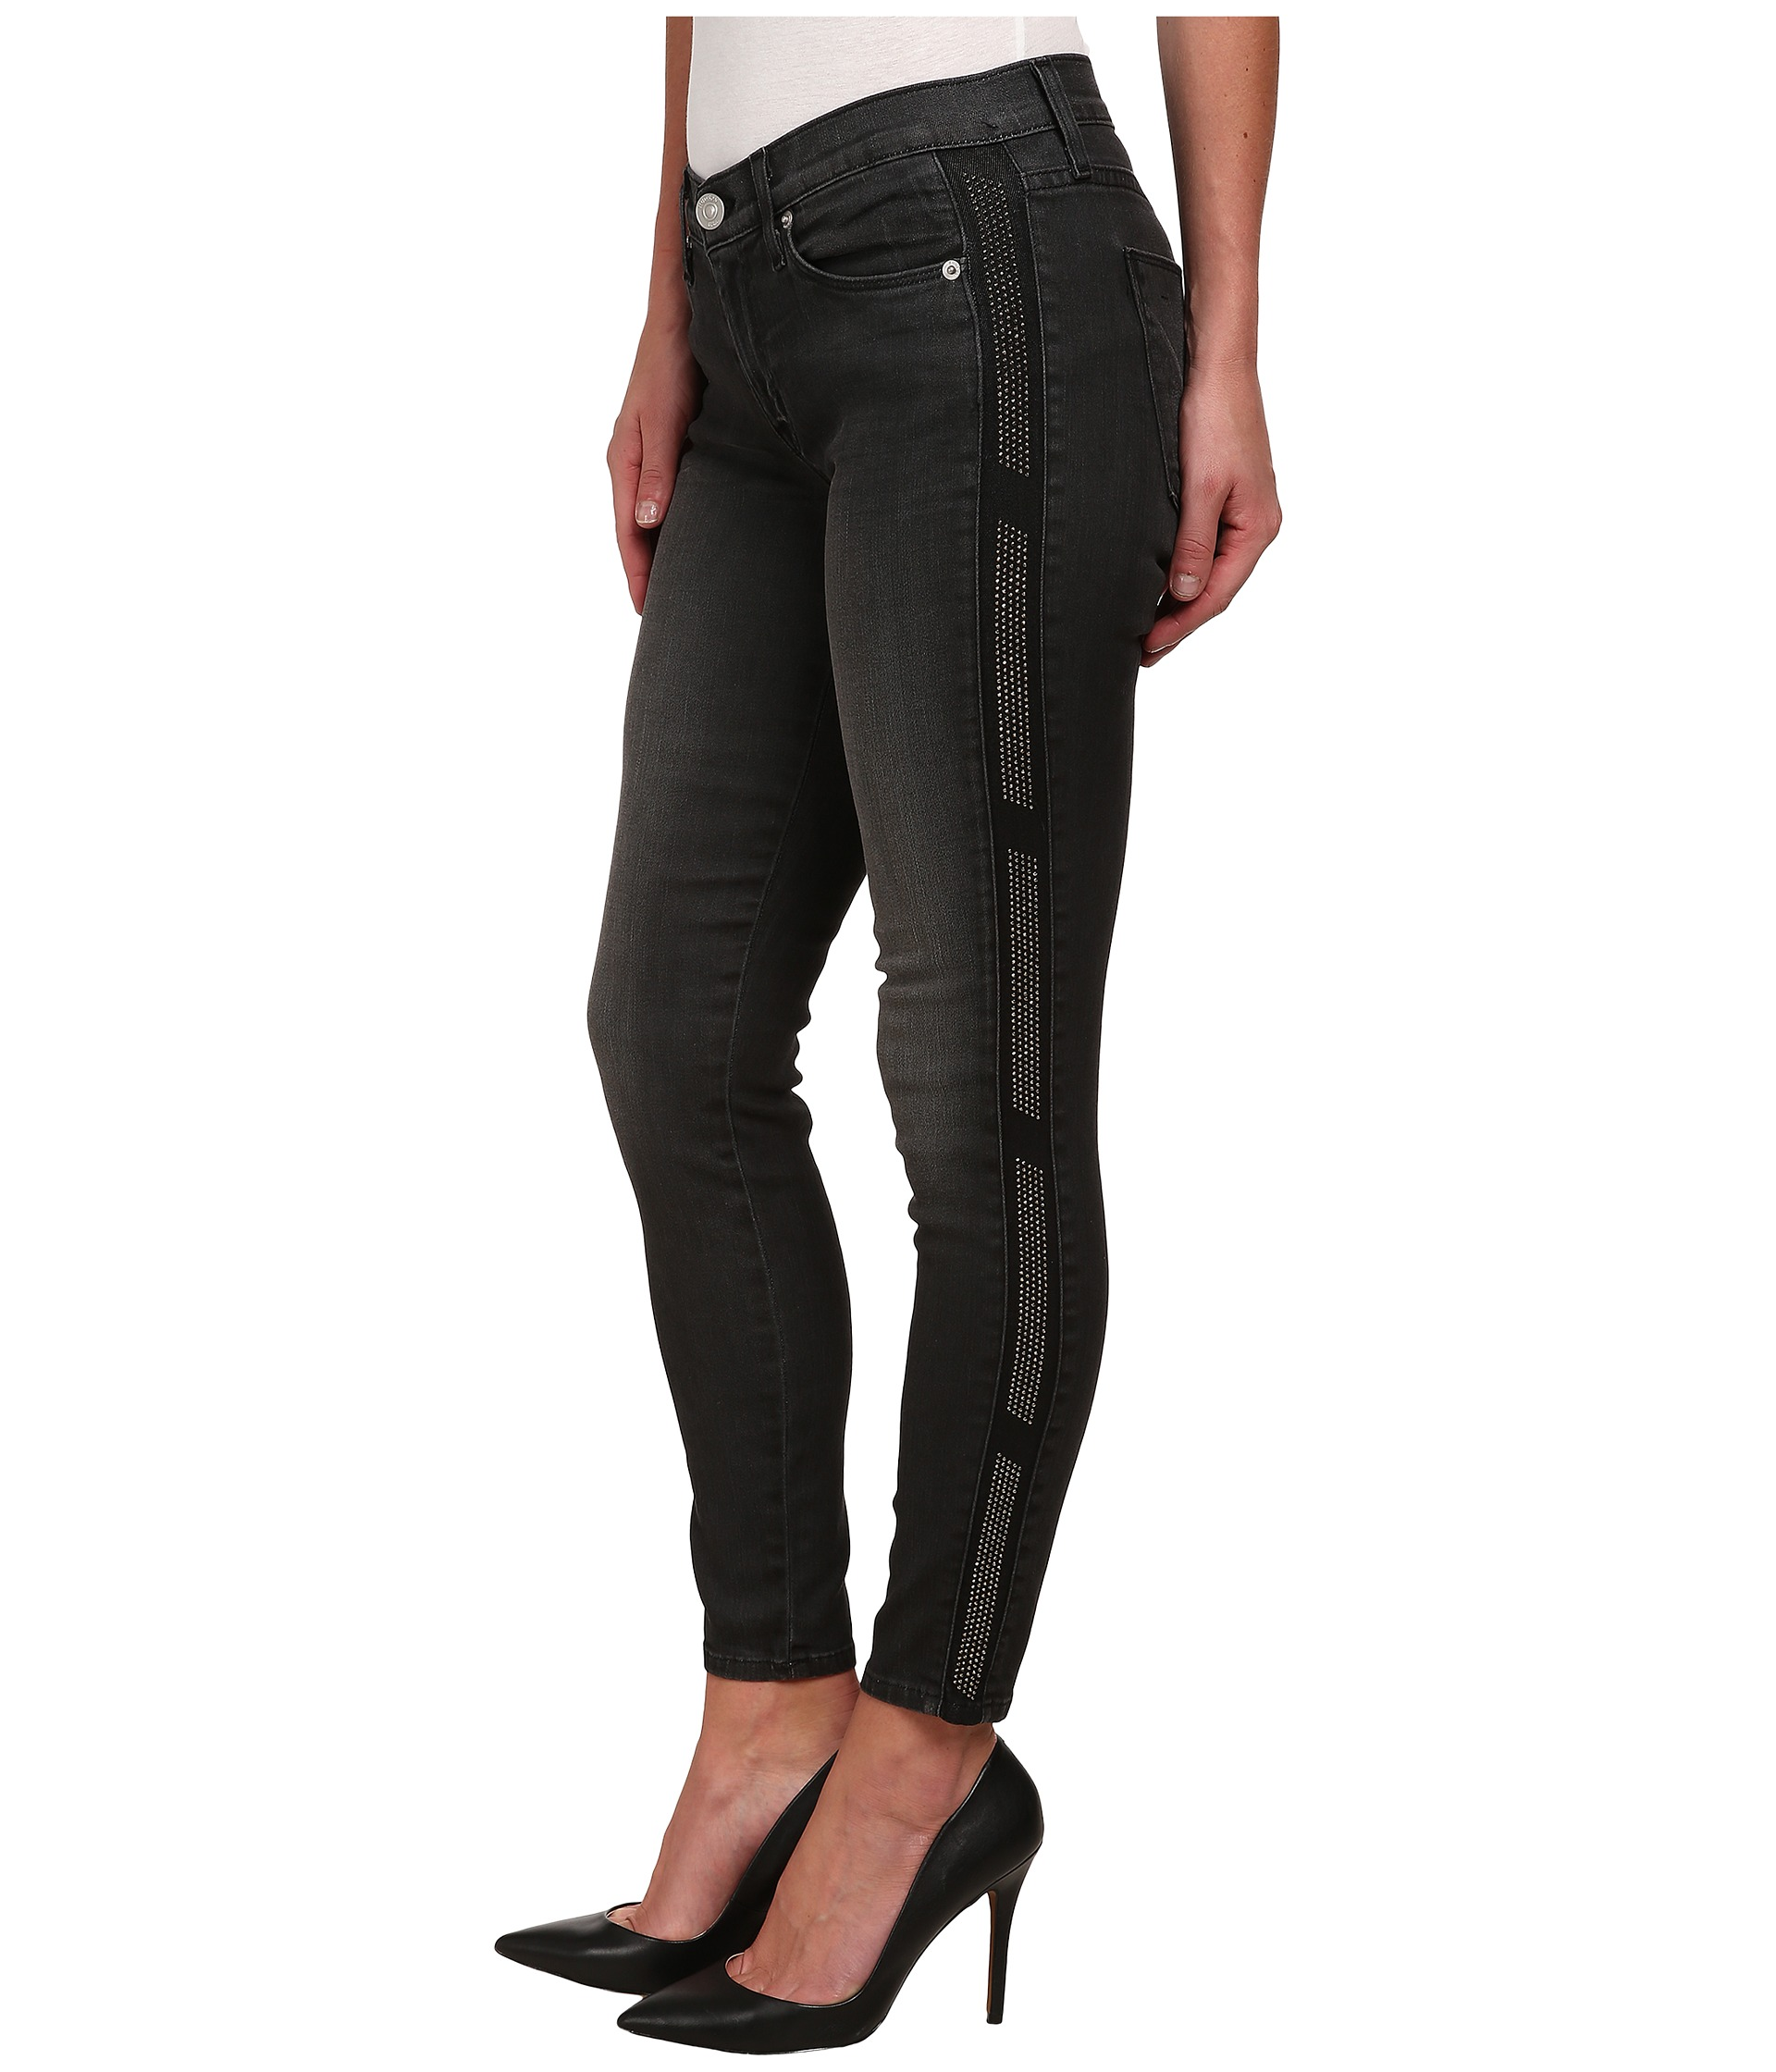 Inc Jeans For Women